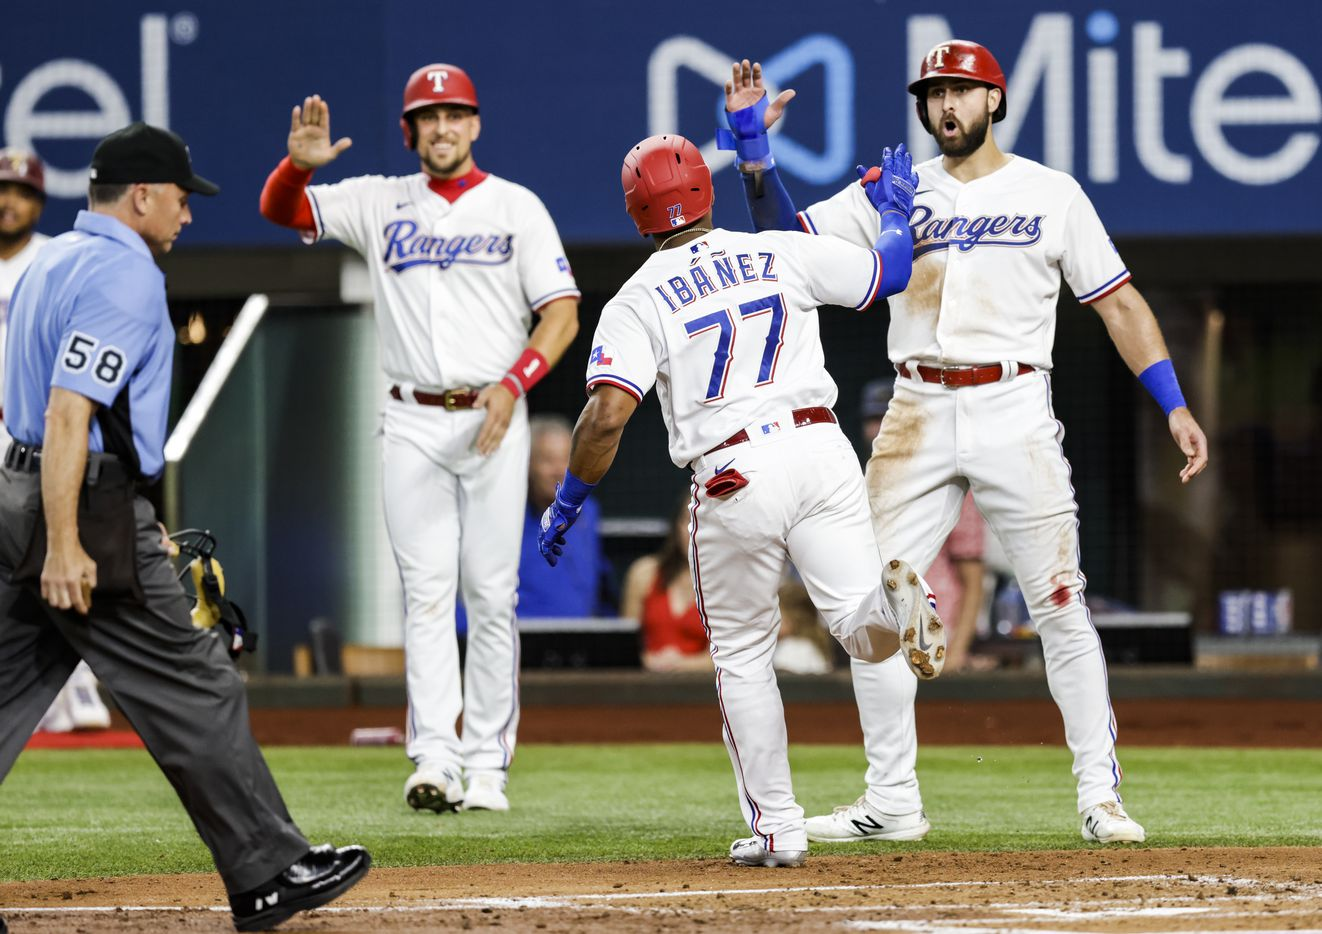 Texas Rangers' Andy Ibanez (77) is congratulated after hitting a three-run home run during the first inning of a baseball game against the Oakland Athletics in Arlington, Monday, June 21, 2021. (Brandon Wade/Special Contributor)